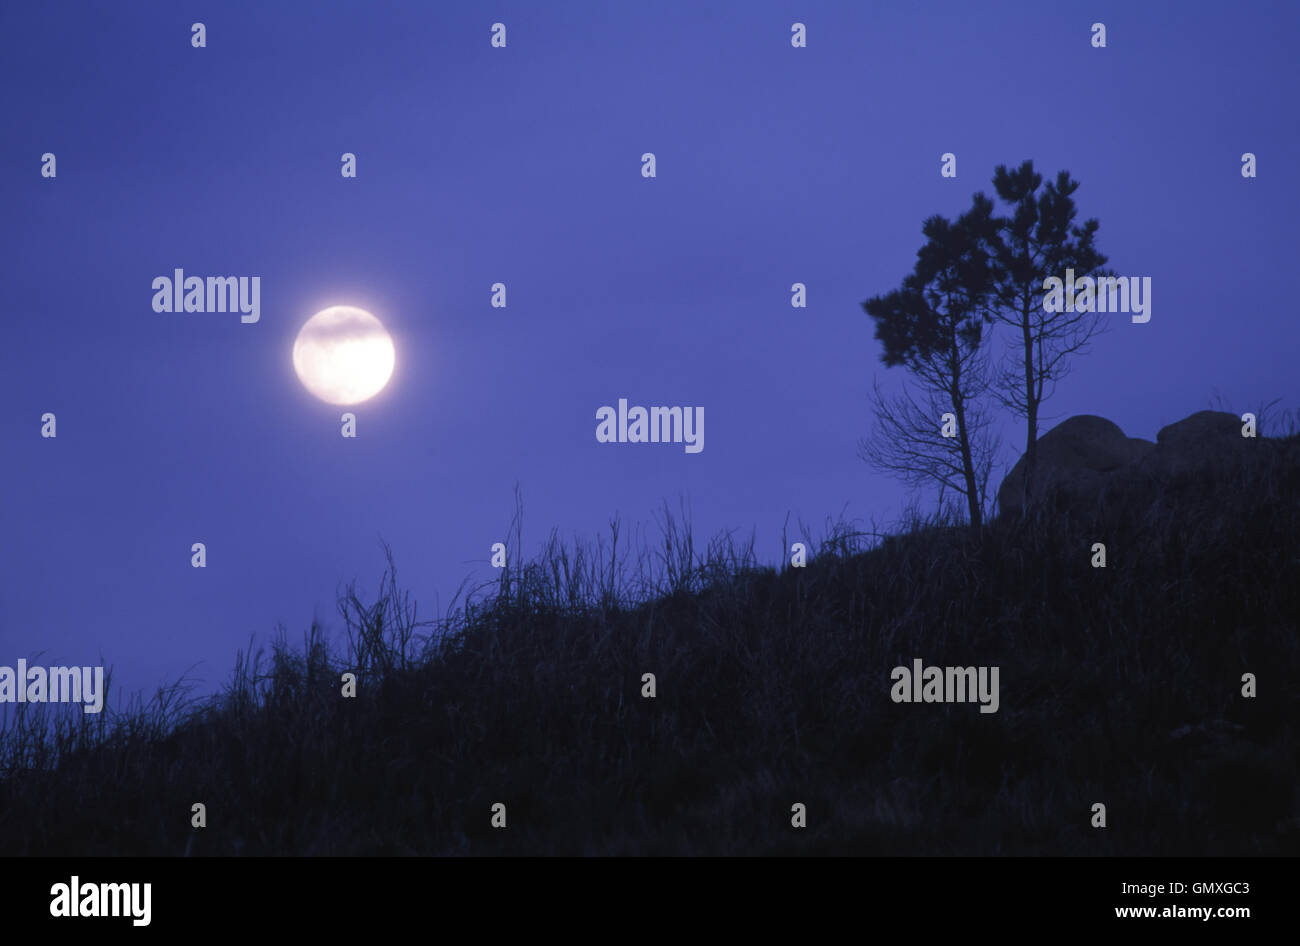 Mountain landscape at night with full Moon. Malveira, Portugal - Stock Image